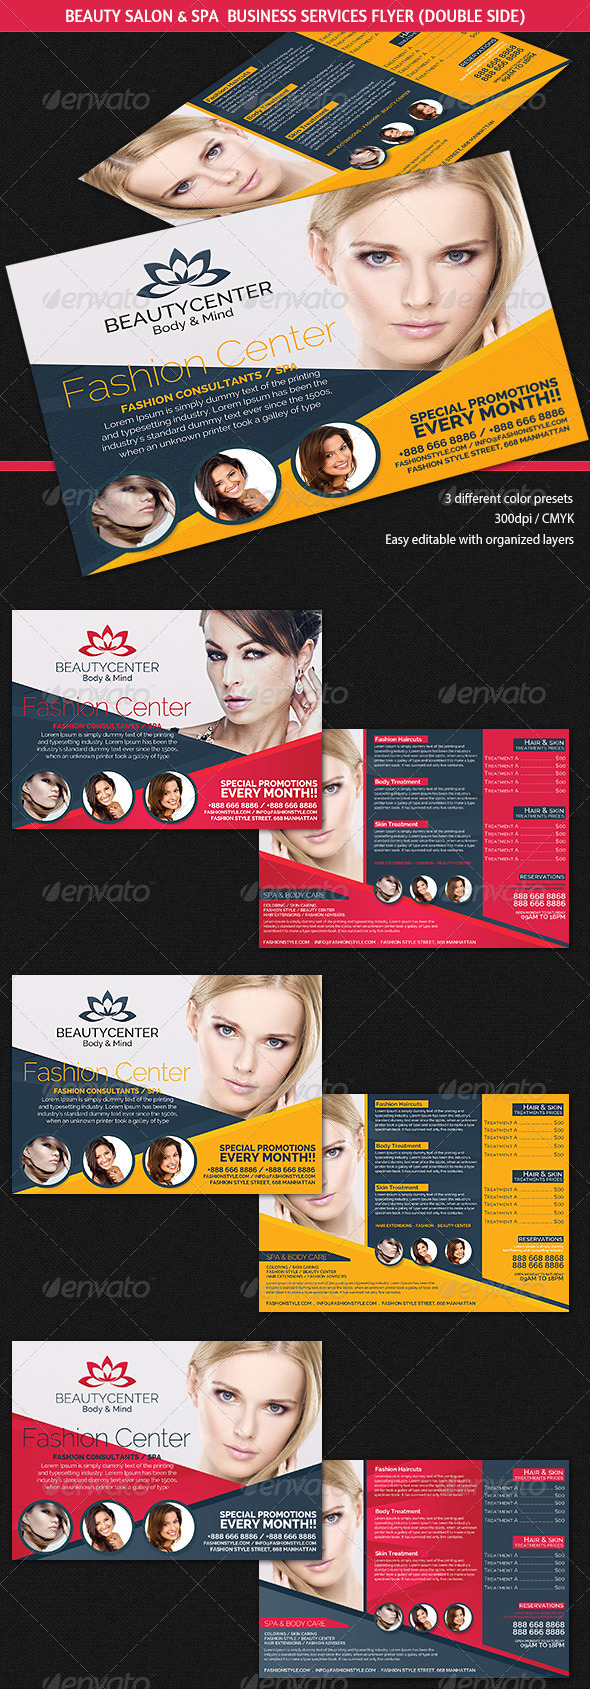 GraphicRiver Beauty Center & Spa Business Services Flyer 5815617